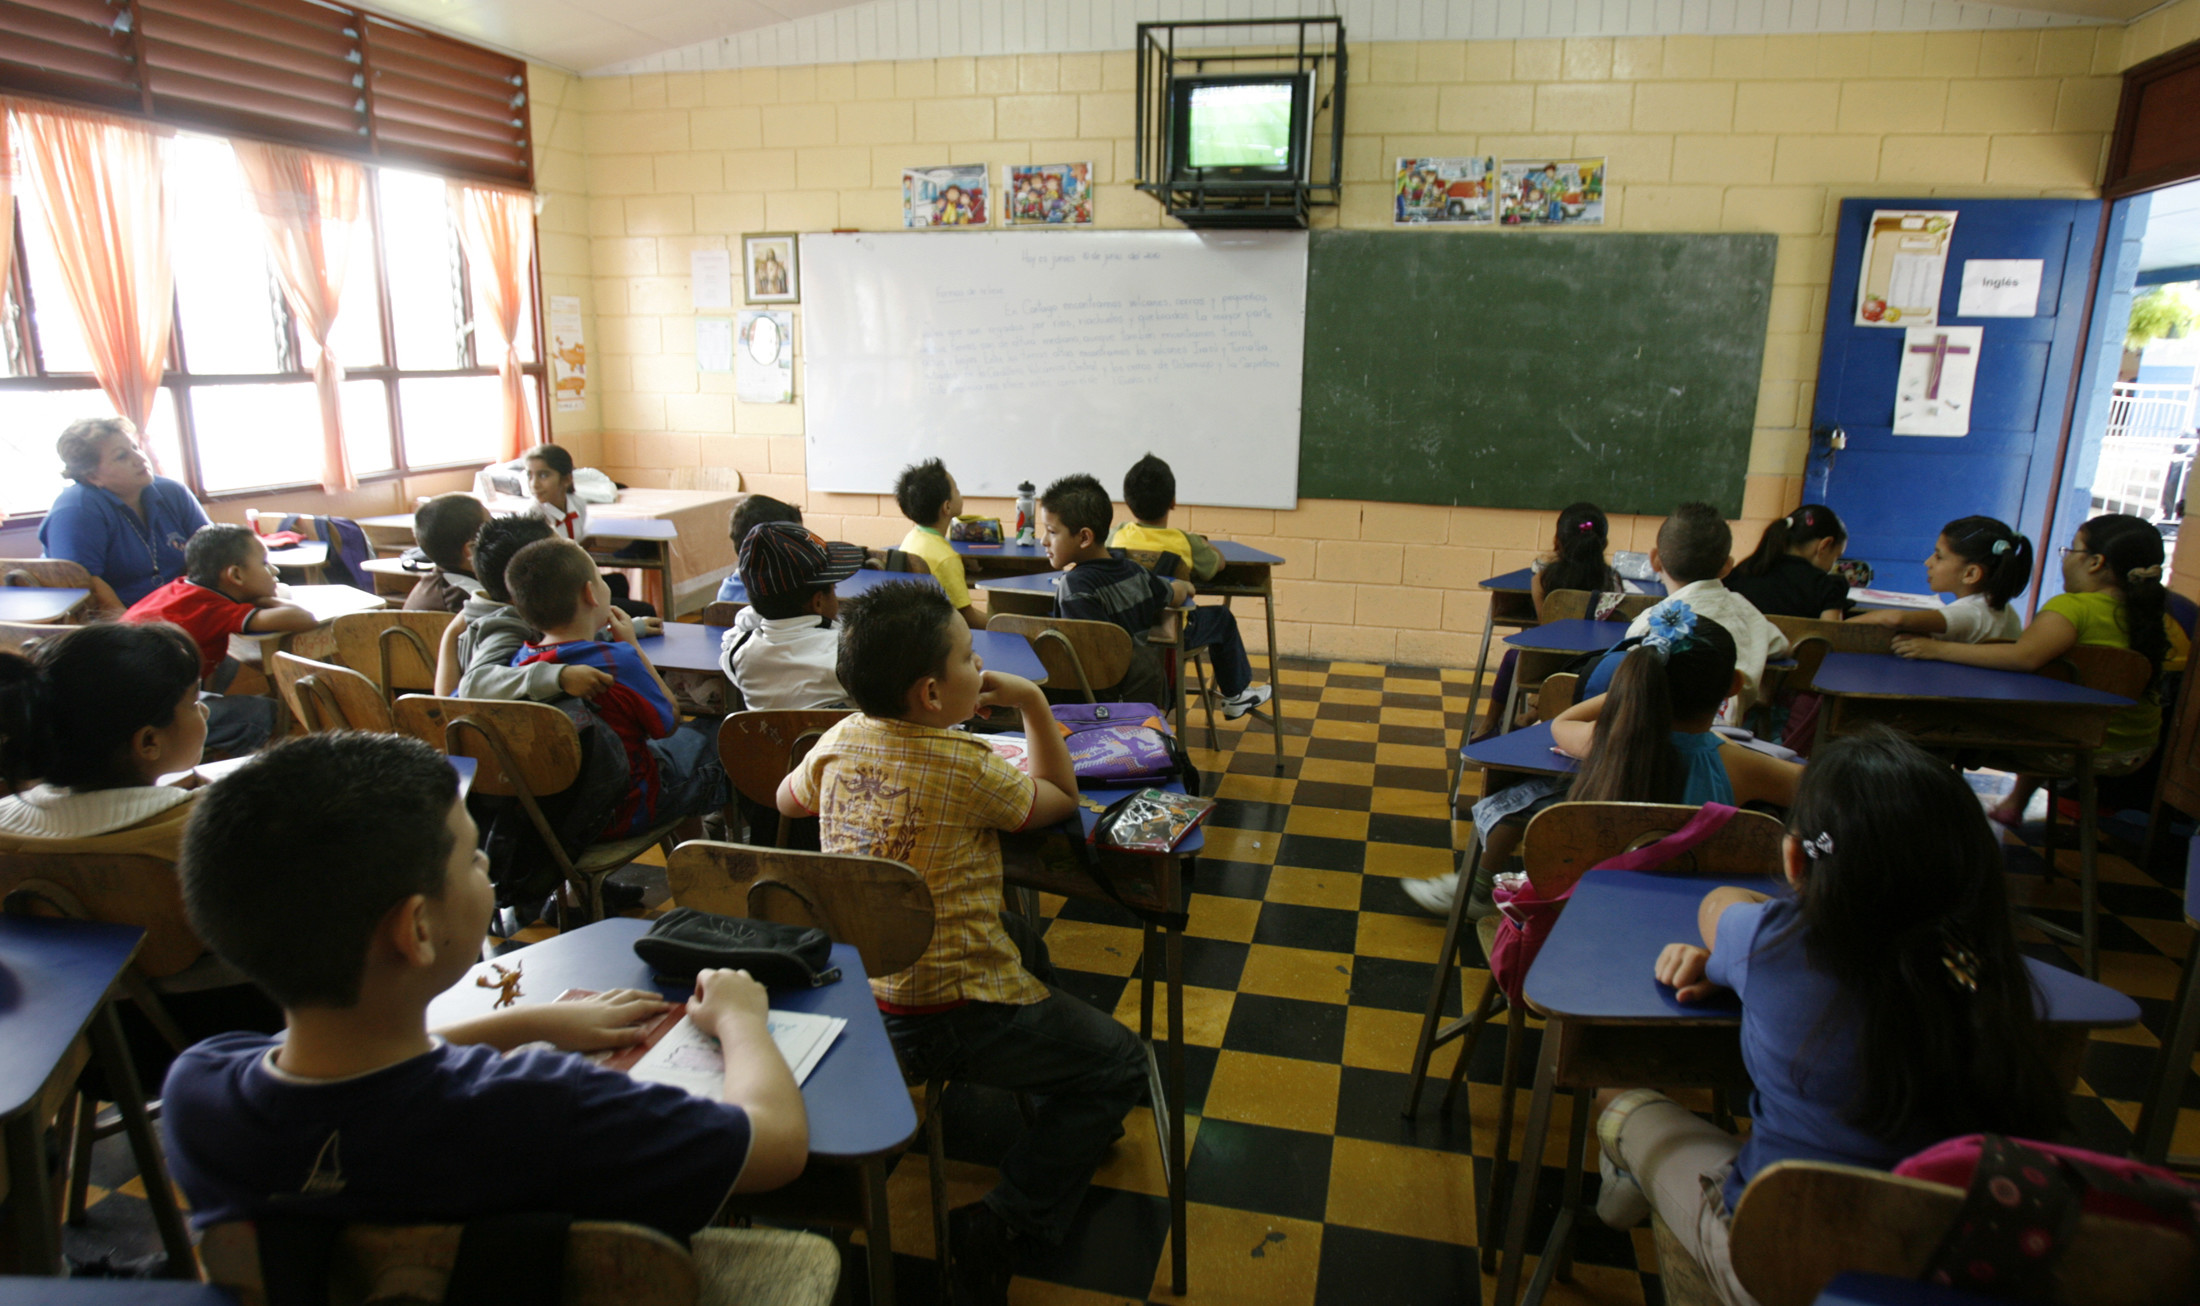 Schoolchildren are seen watching television, with their teachers, inside a school in Costa Rica.